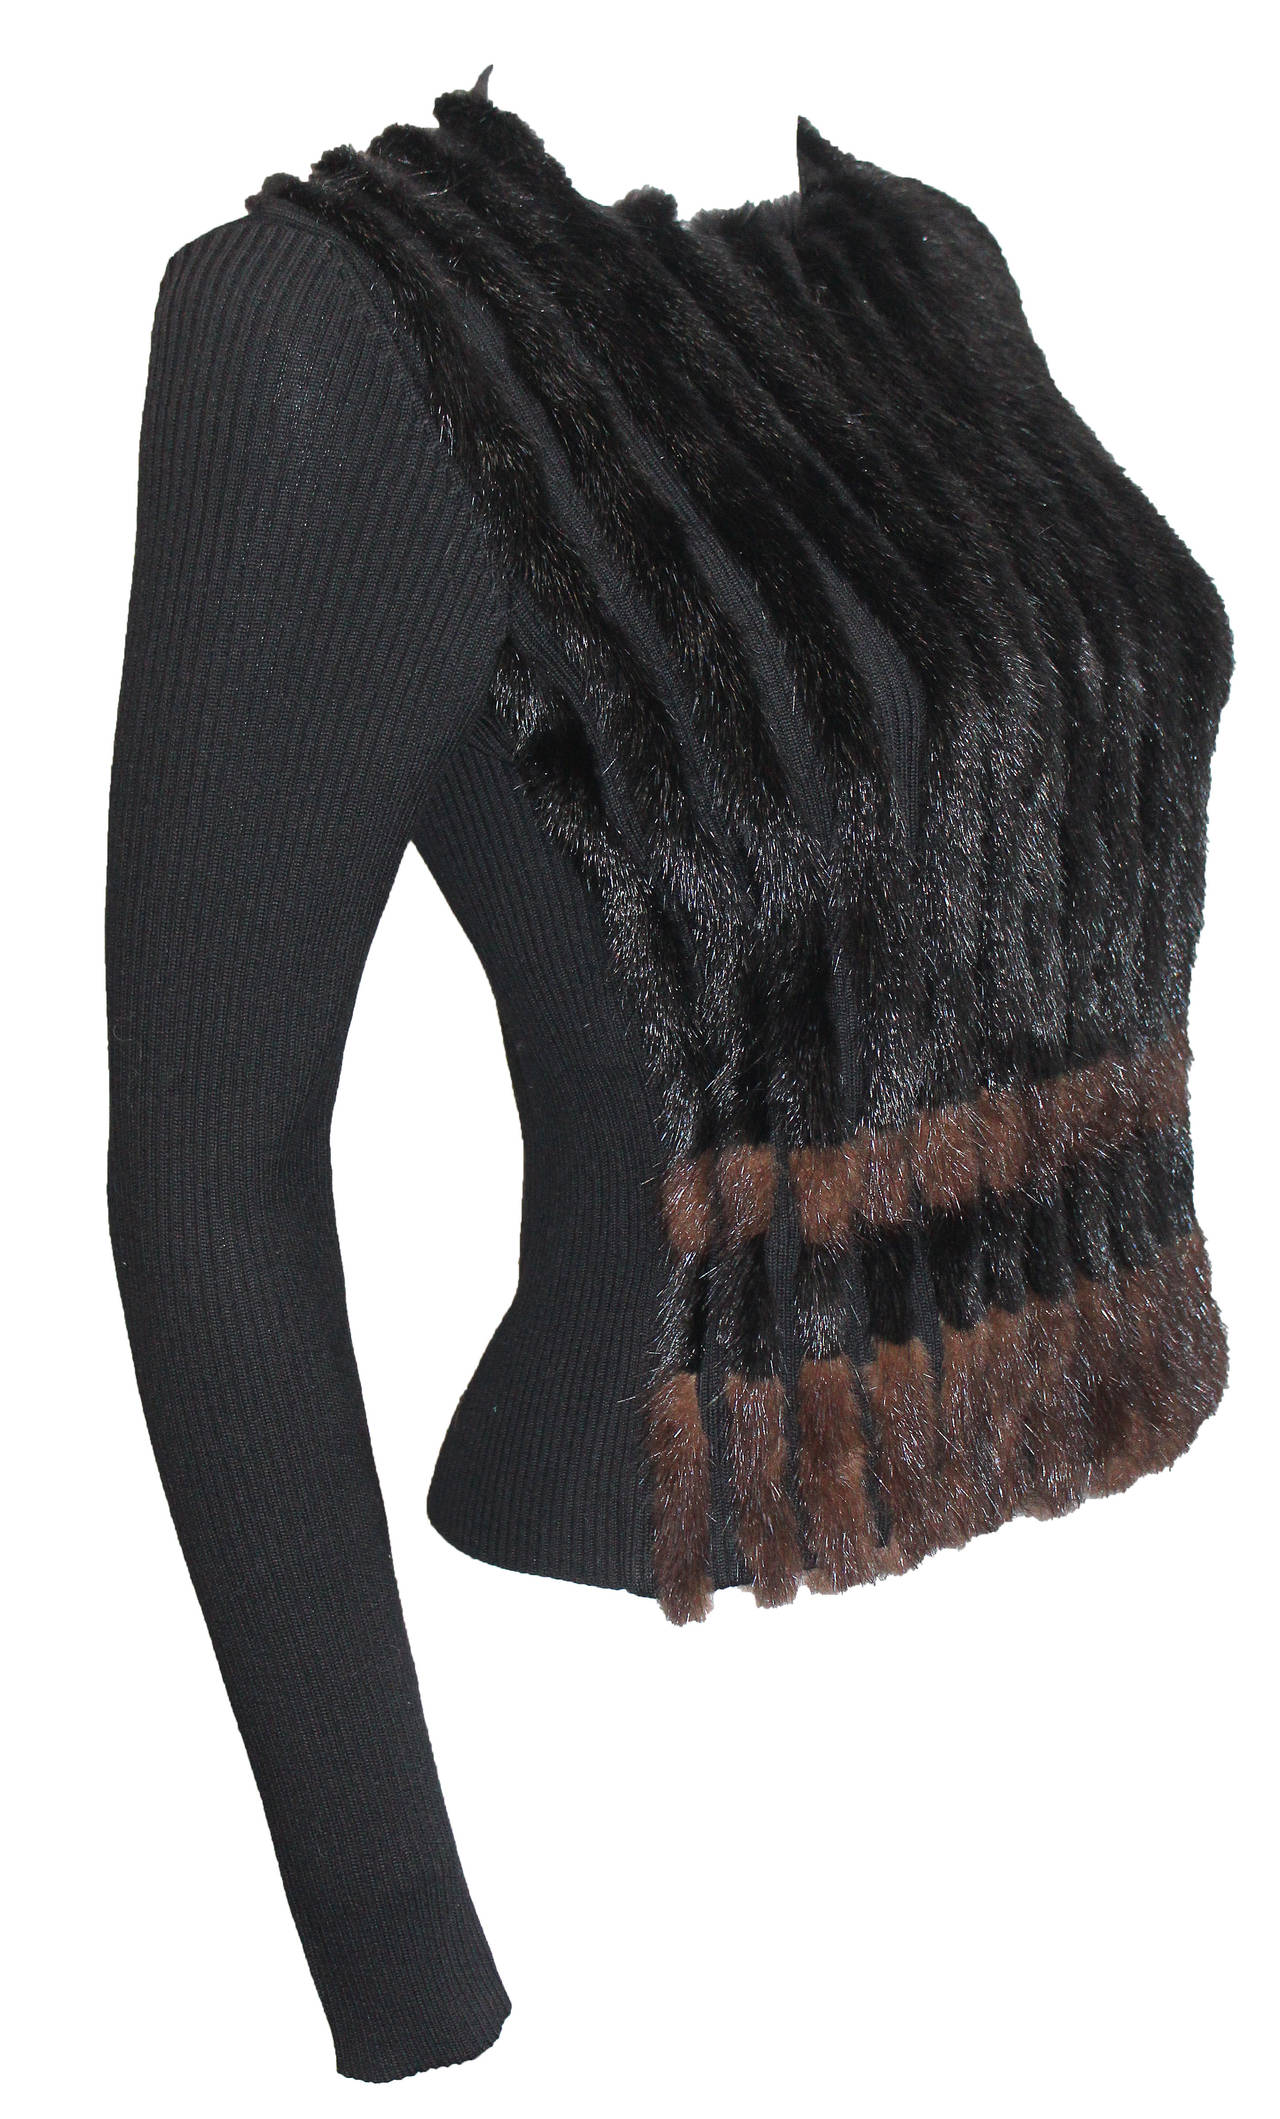 A rib knit sweater by Prada from the 1990s with mink fur striped panels.   Sizing: It 38 / Fr 34 / UK 6 / US 4